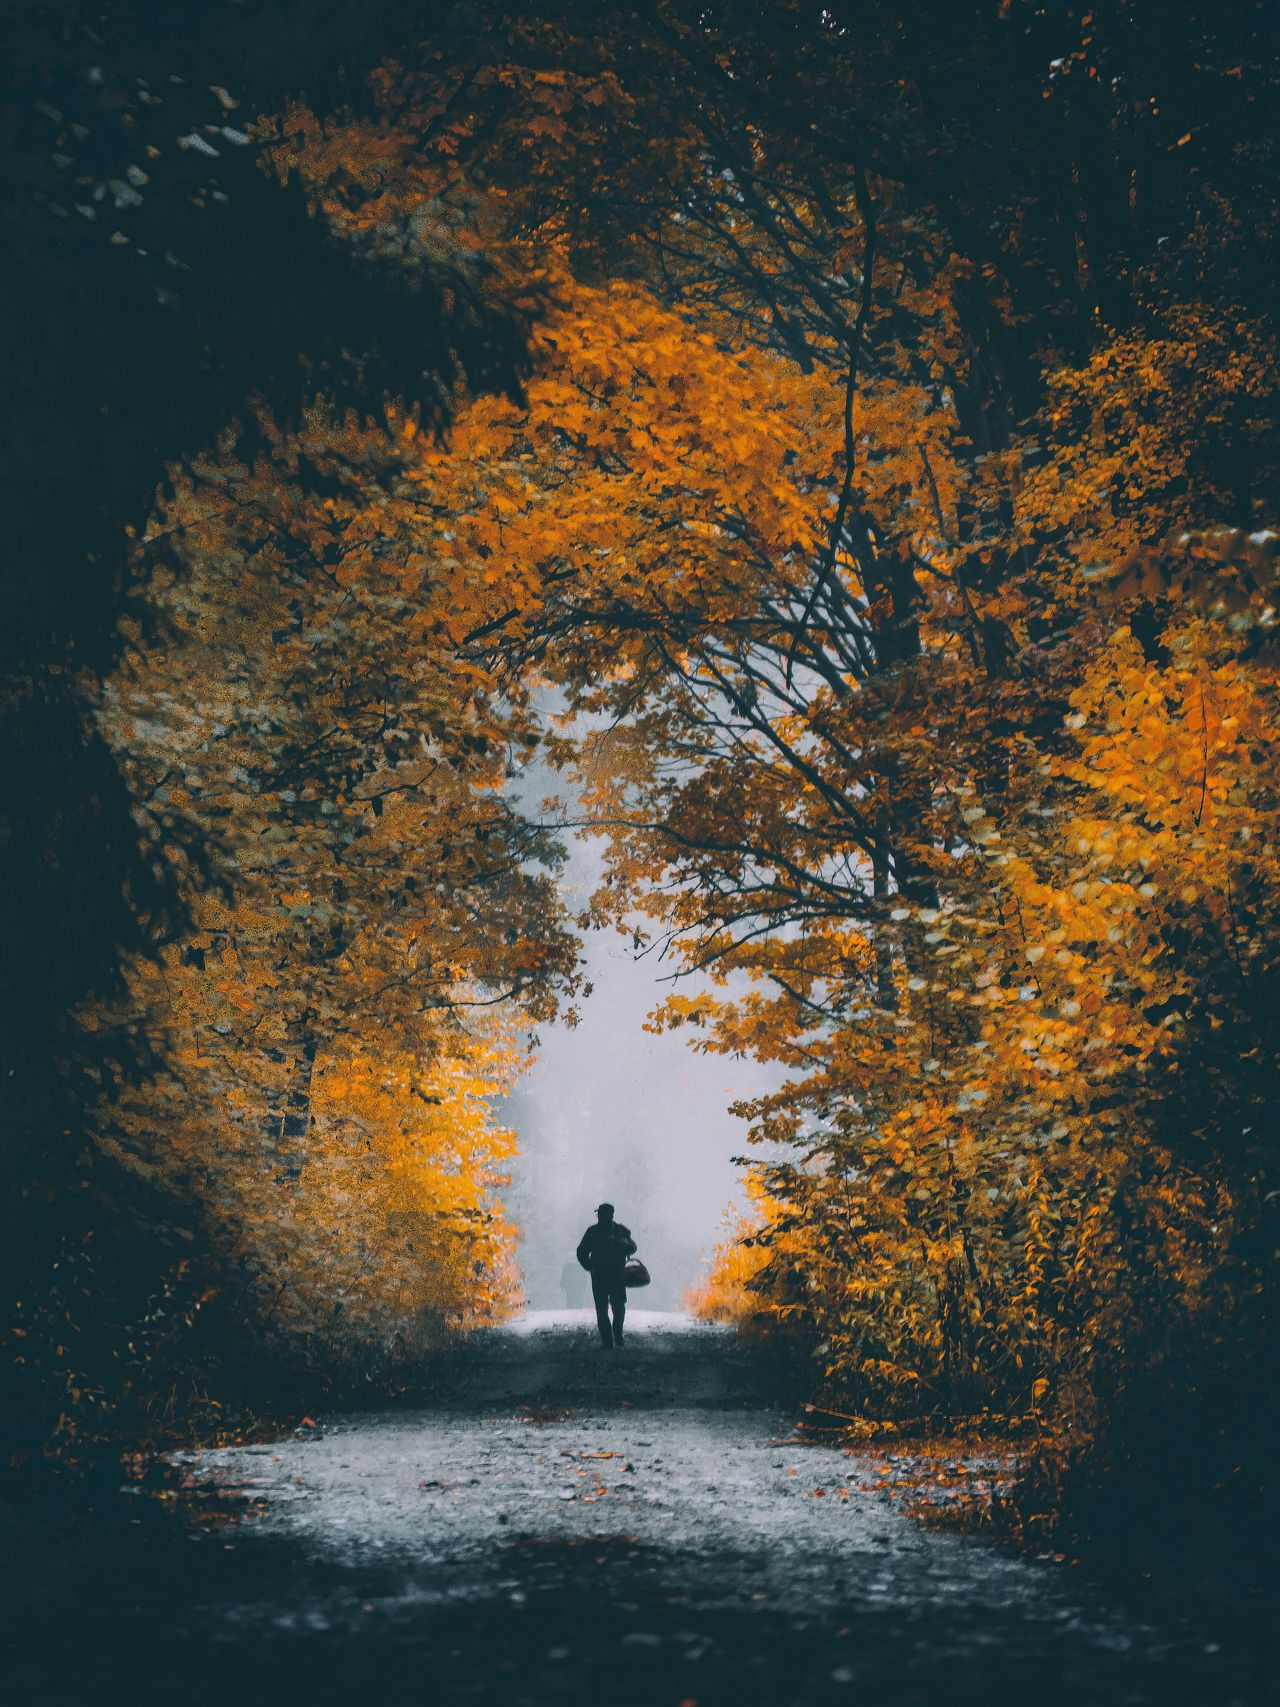 One Person Standing Rear View Full Length Real People Nature One Man Only Tree Men Beauty In Nature Outdoors Water Autumn Silhouette Forest Day Adults Only Scenics Only Men People